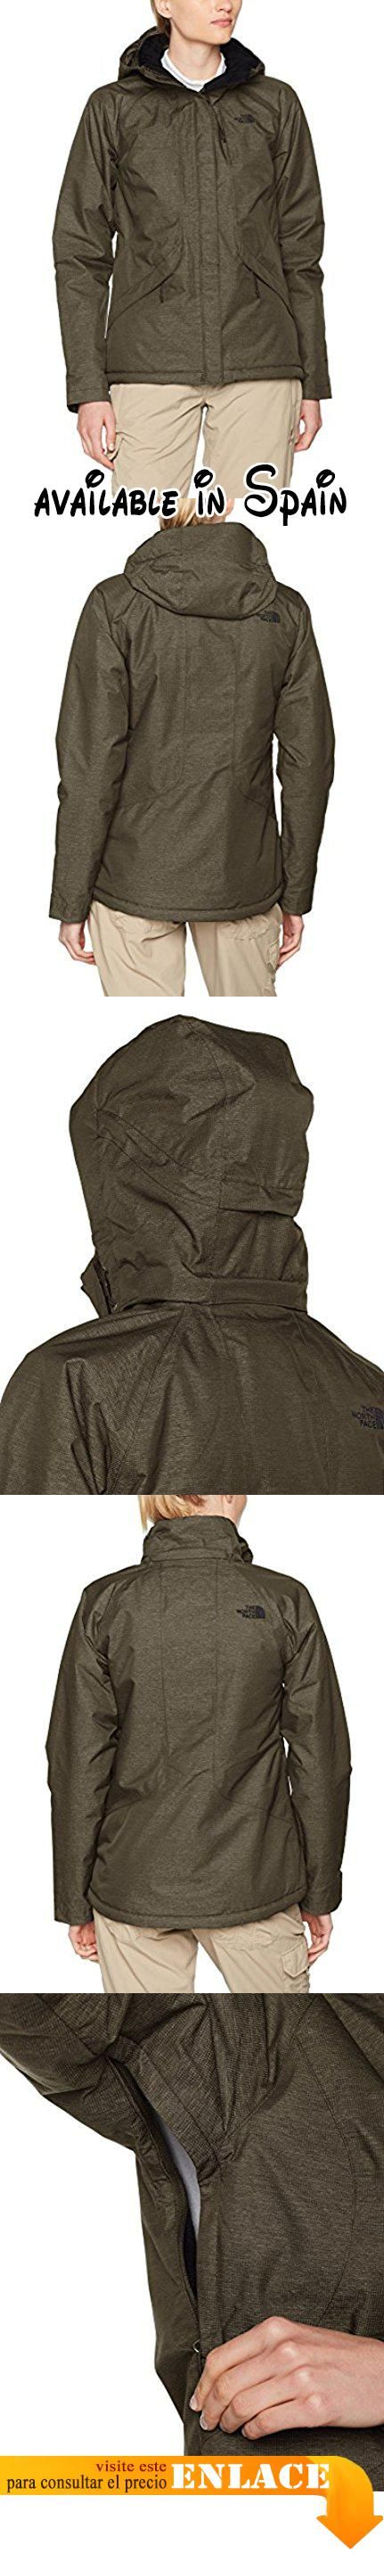 B073xy81qf Mujer Inlux Insulated Face North Jacket Chaqueta W The TqvrTw